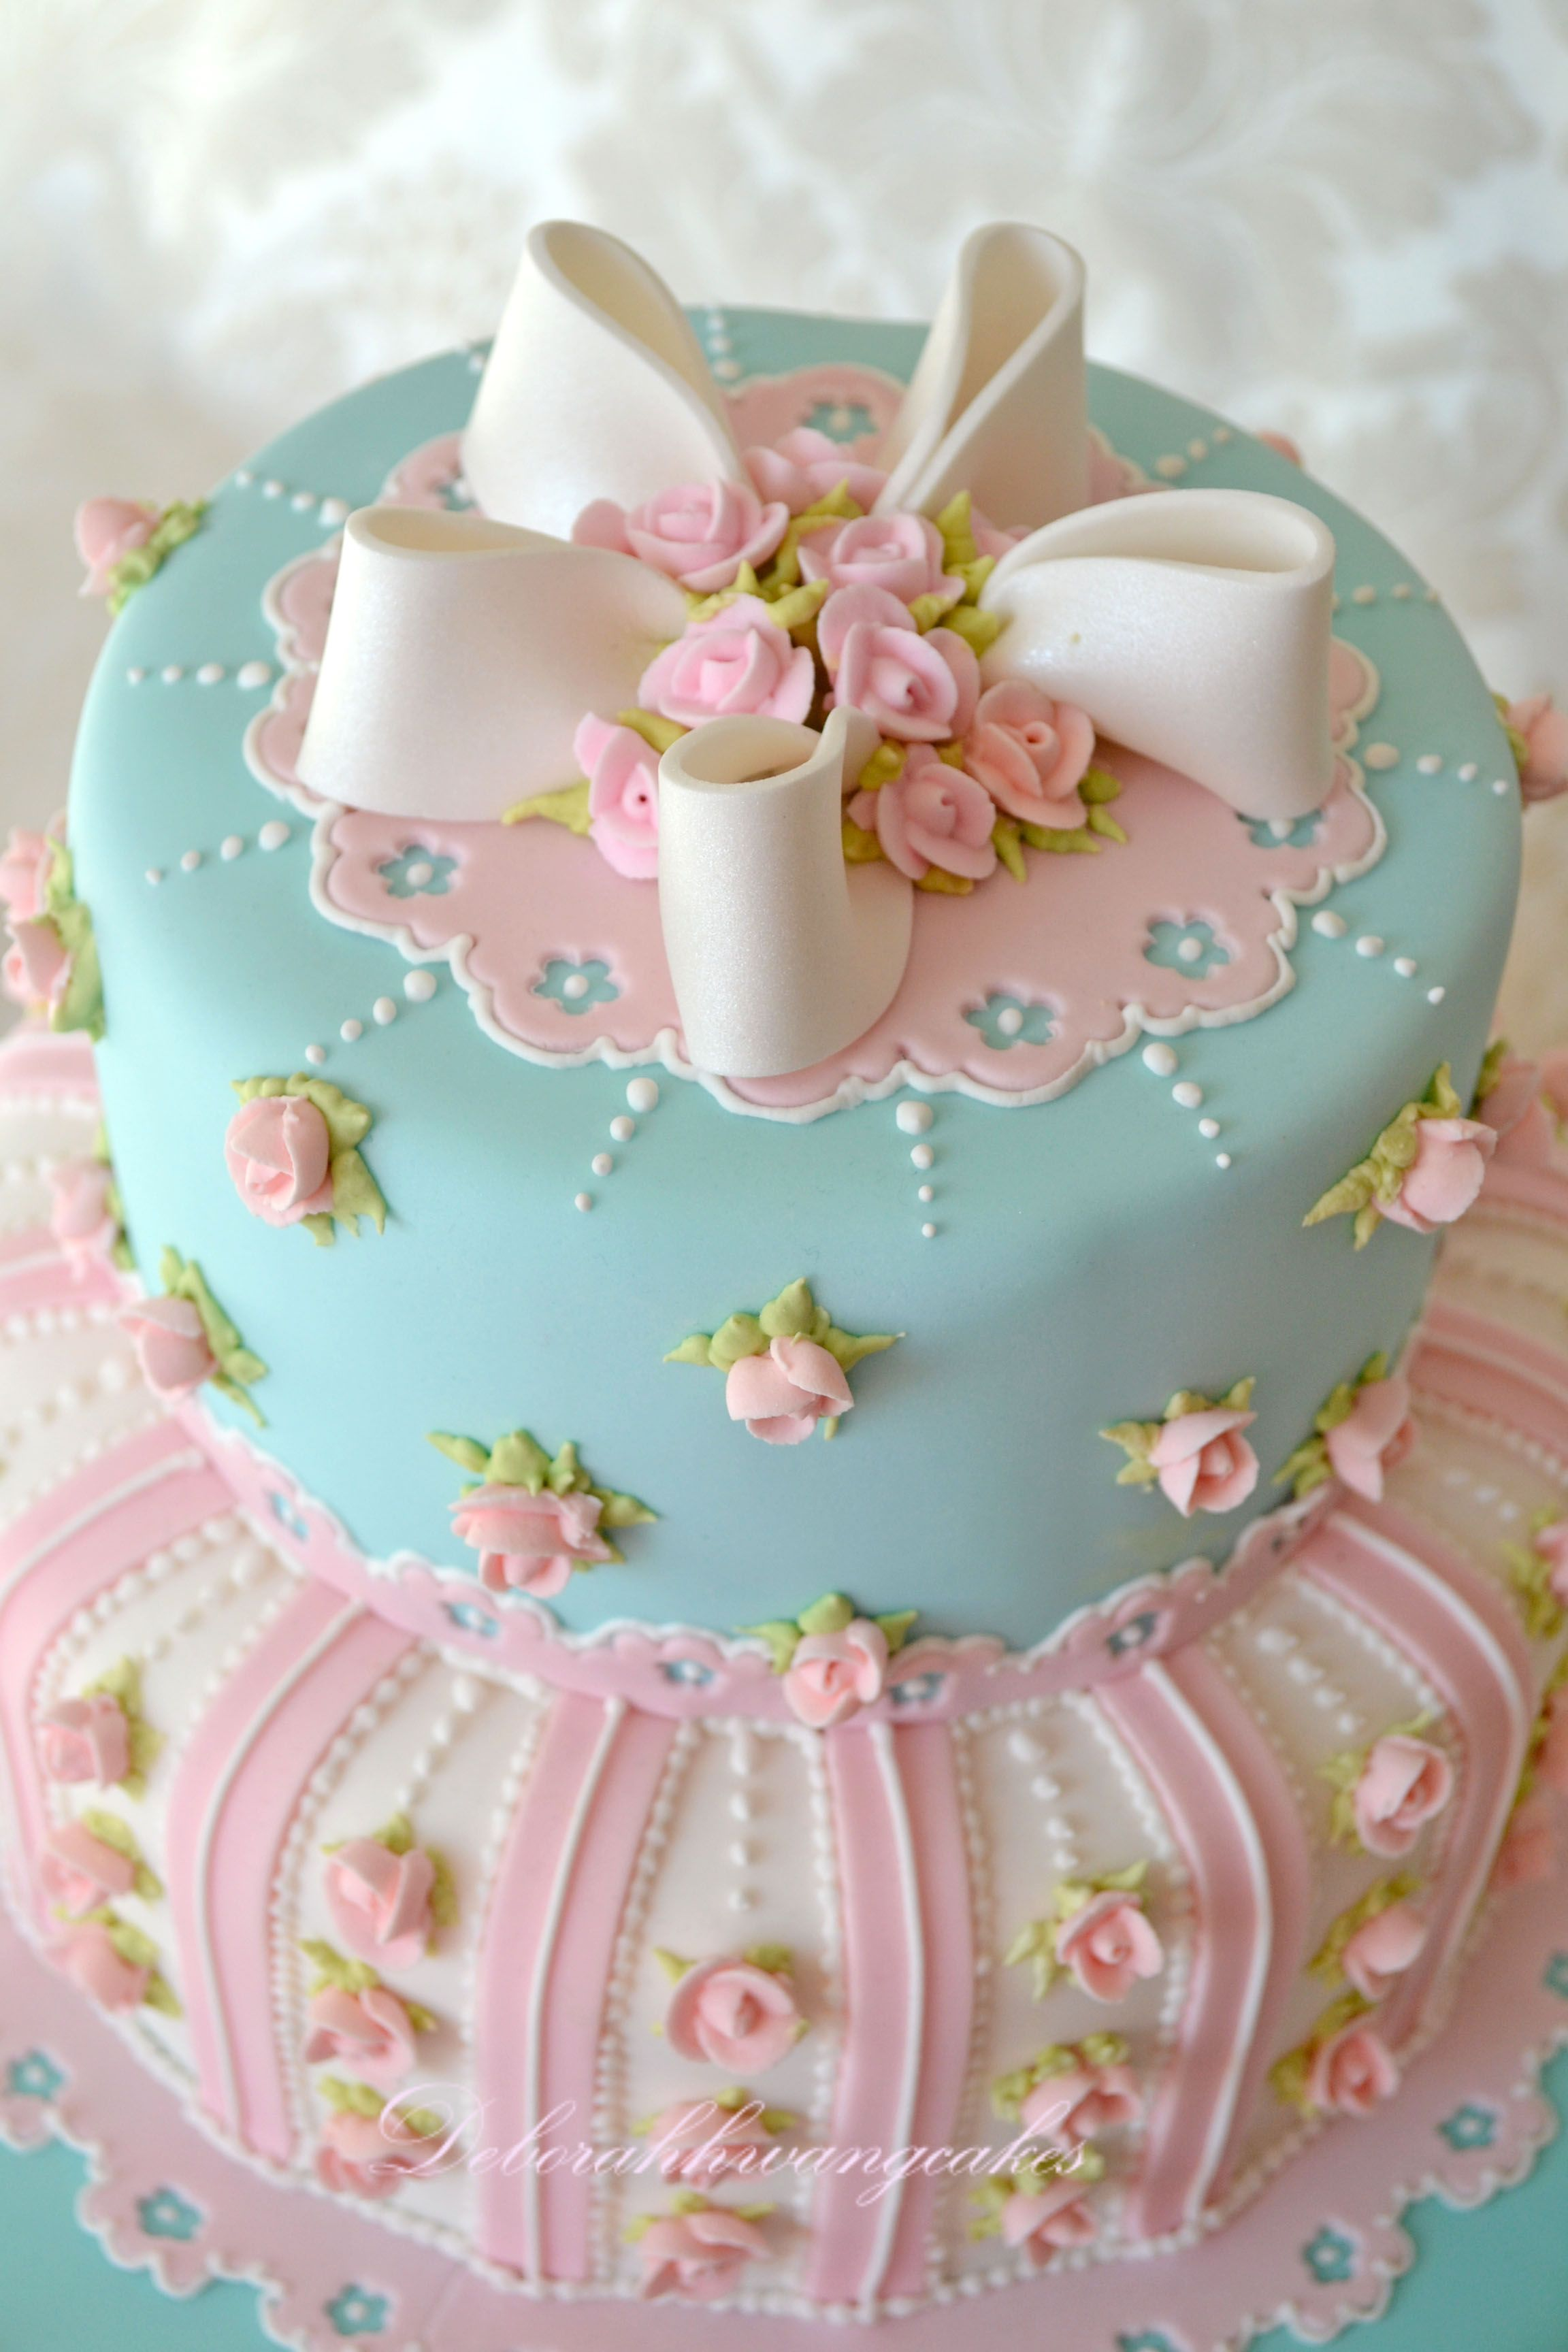 Phenomenal Cath Kidston Inspired Wedding Cake With Images Girl Cakes Funny Birthday Cards Online Alyptdamsfinfo